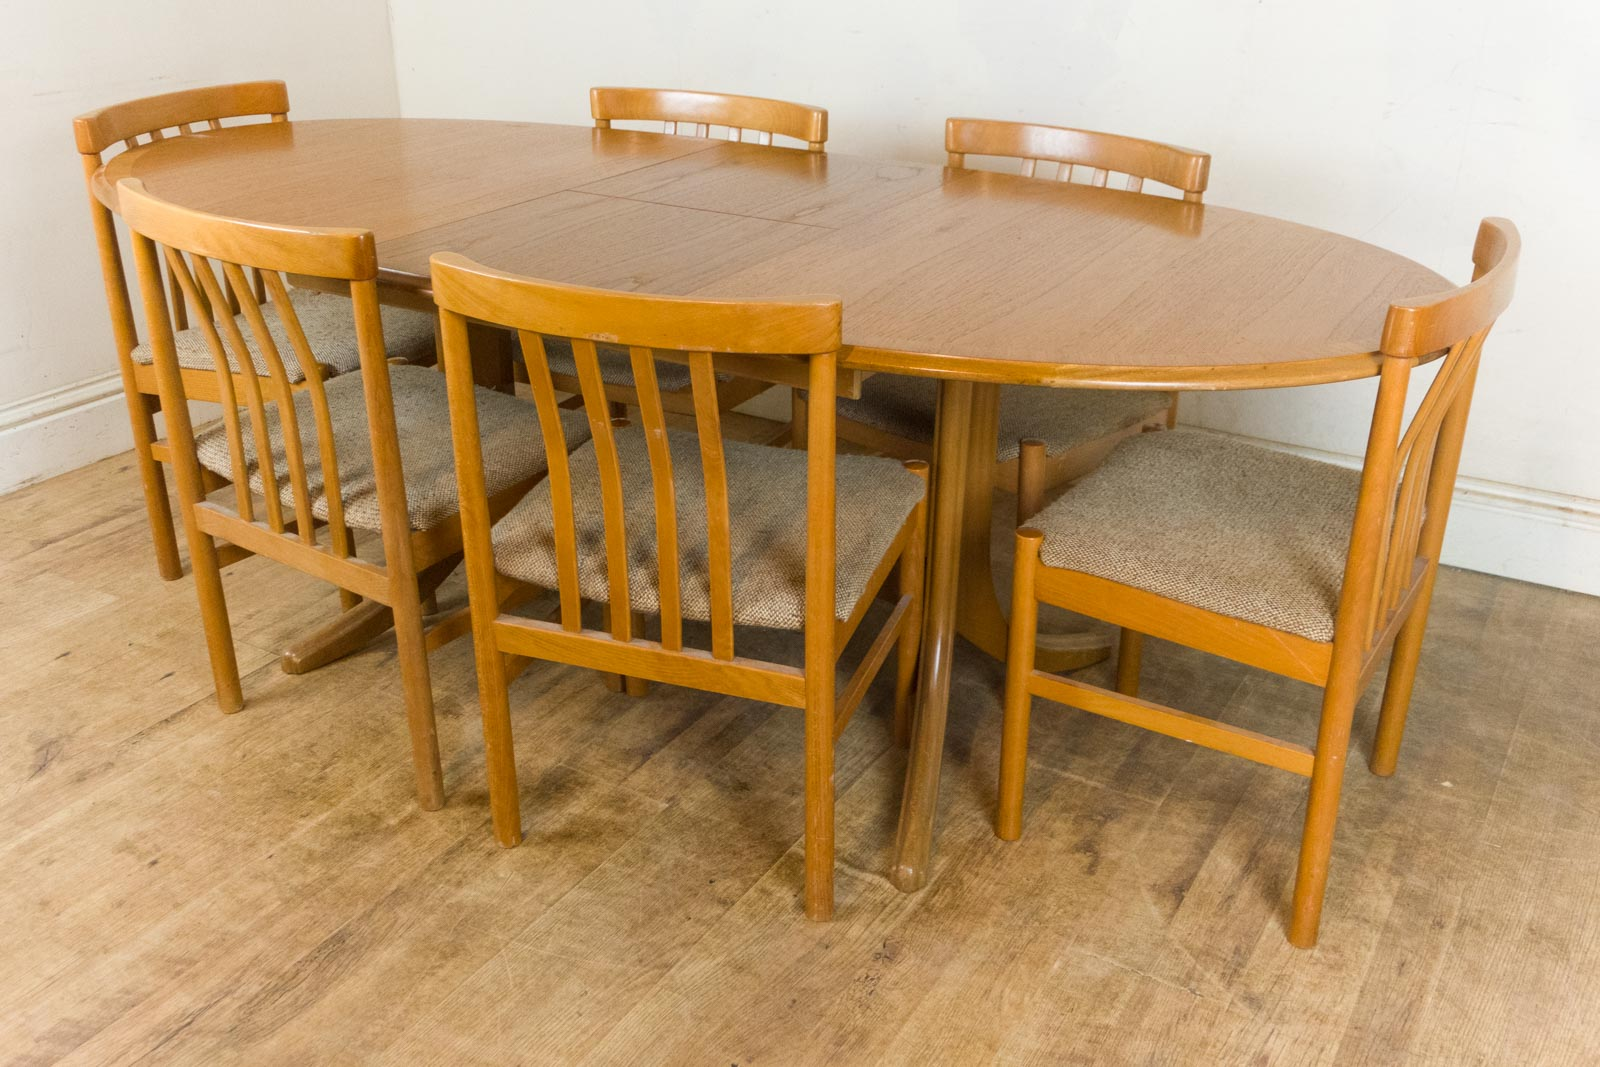 Vintage Retro Nathan Teak Extending Table and 6 Danish  : HV200802 9 from www.ebay.co.uk size 1600 x 1067 jpeg 271kB